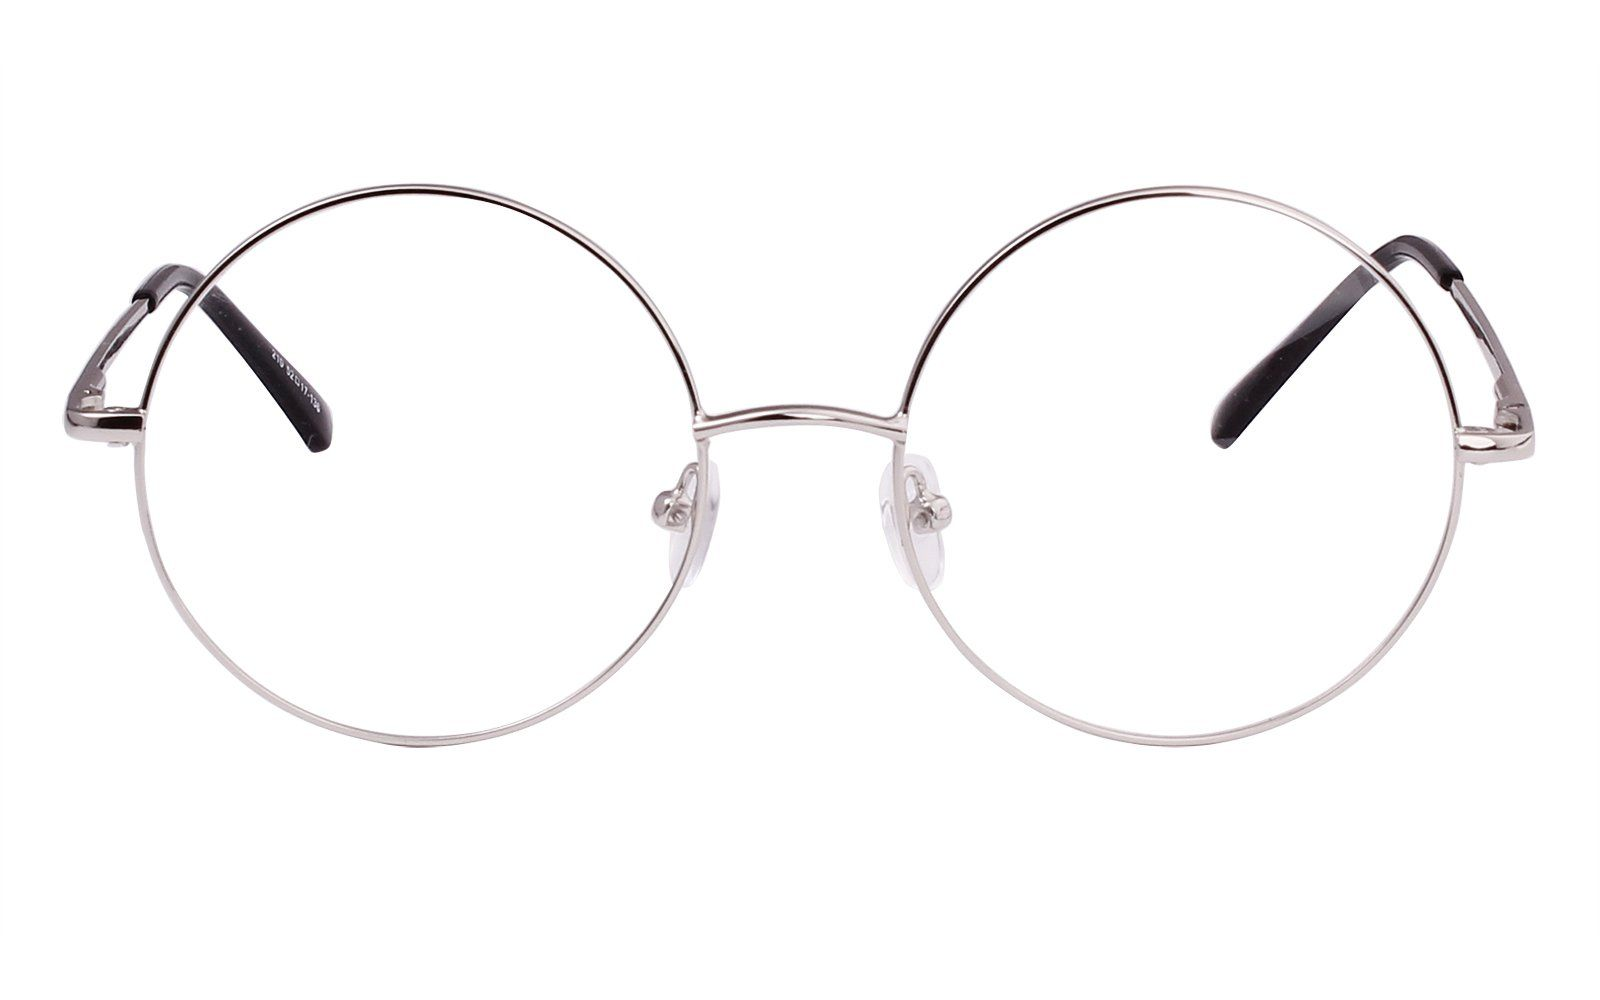 0cbaaa3ba5 Agstum Retro Round Prescription ready Metal Eyeglasses Frame 51mm XLarge  Size Silver 51     Details can be found by clicking on the image.